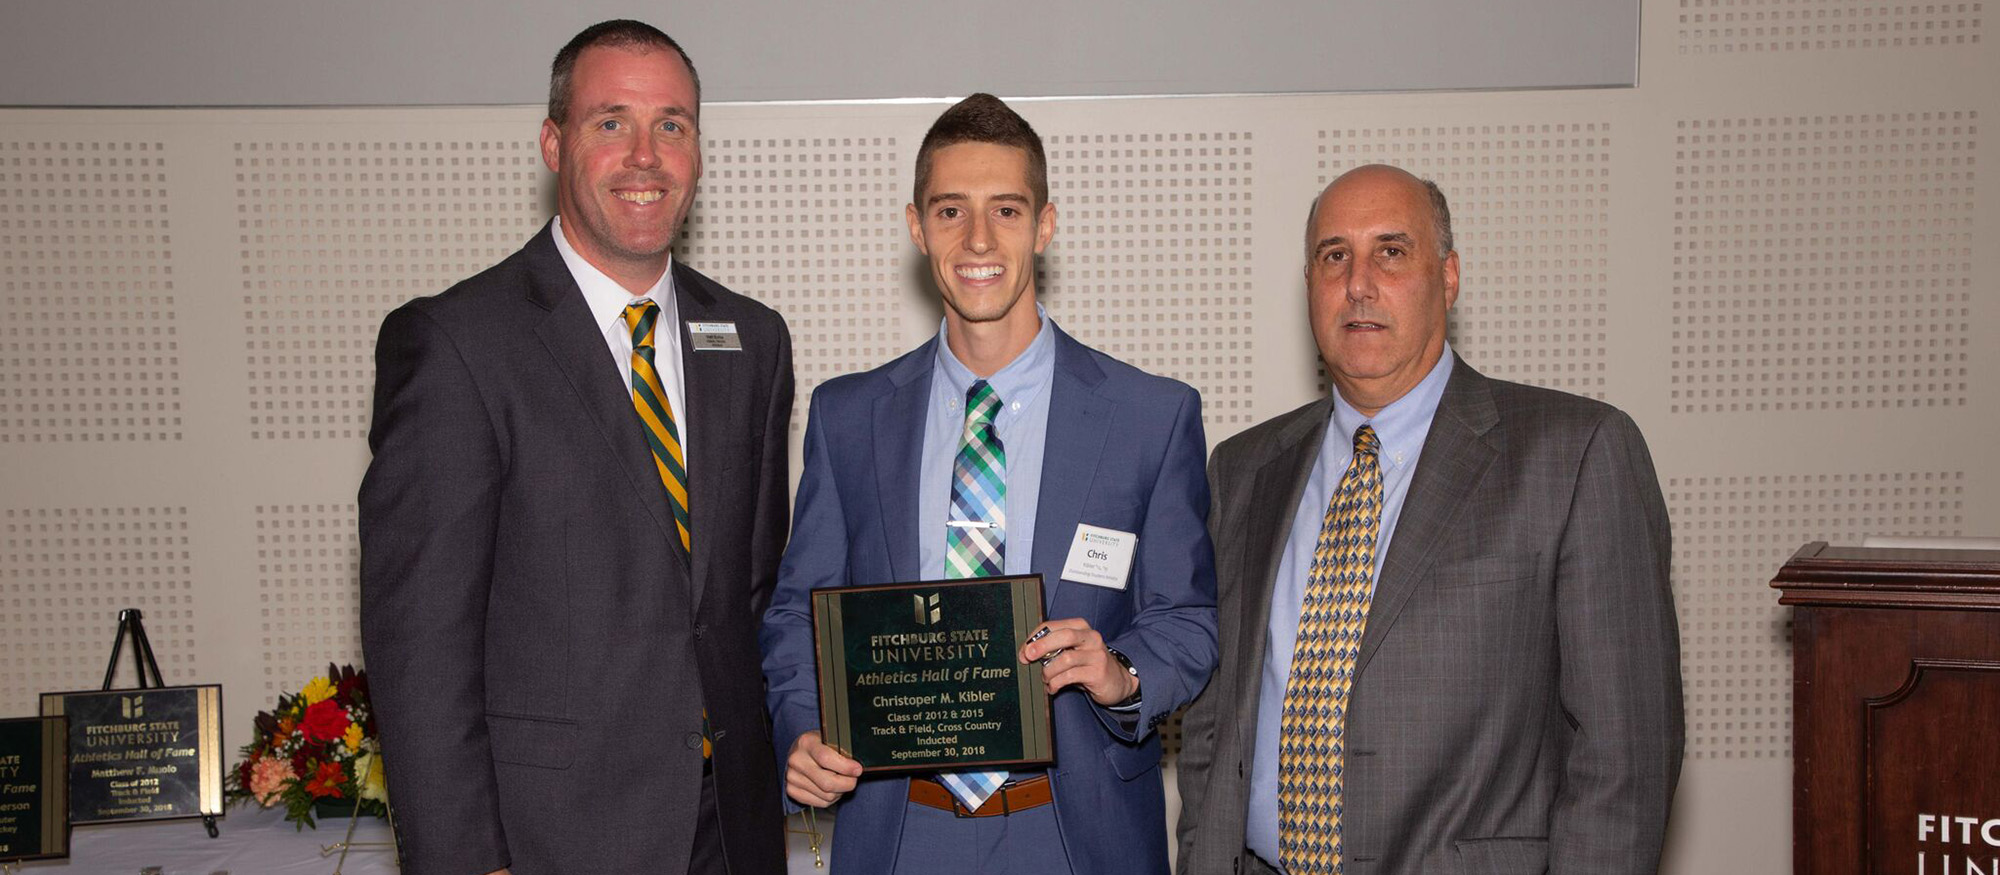 MHC head cross country and track & field coach, Chris Kibler is pictured with representatives from Fitchburg State during his induction into the Fitchburg State Athletics Hall of Fame.